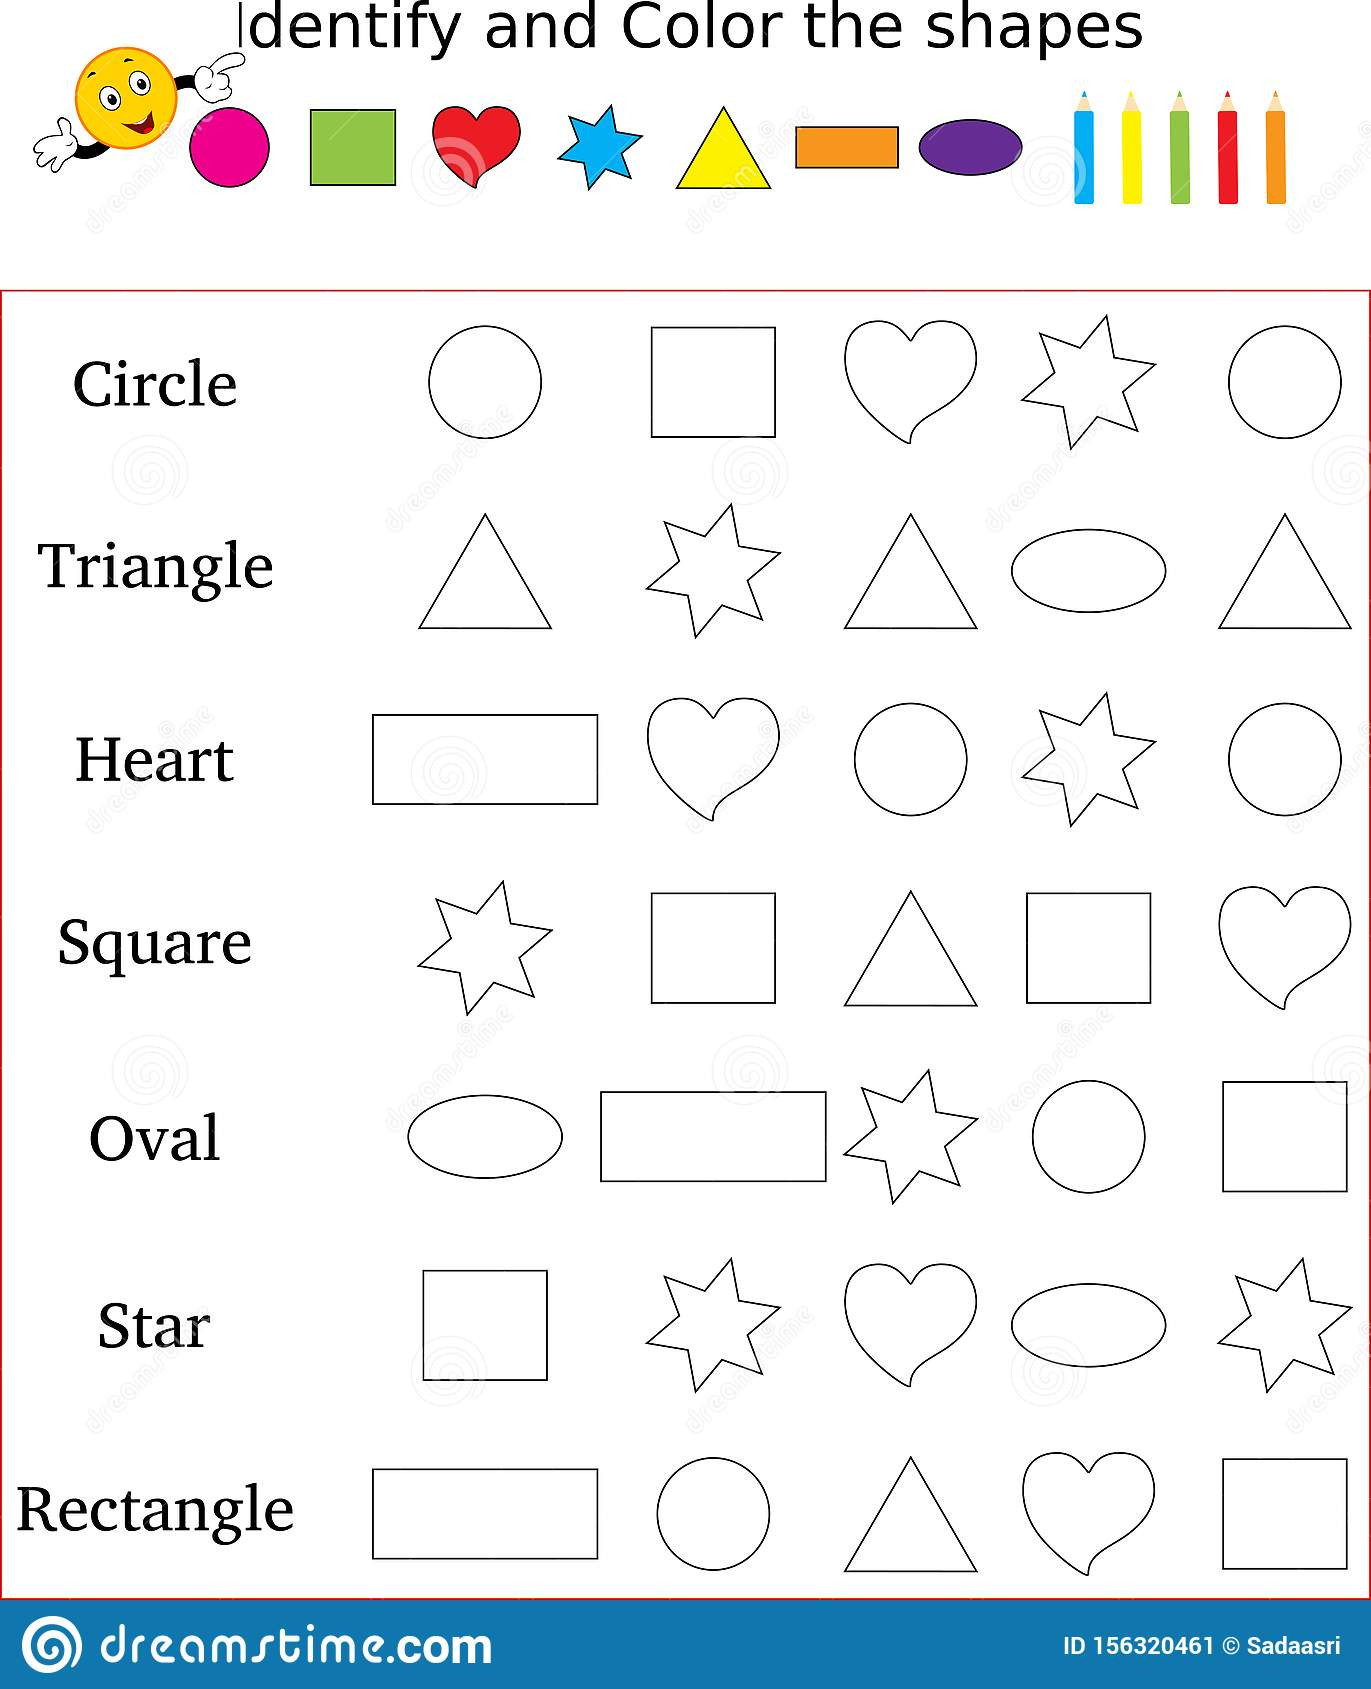 Polygon Worksheets for 2nd Grade Identify and Color the Correct Shape Worksheet Stock Image